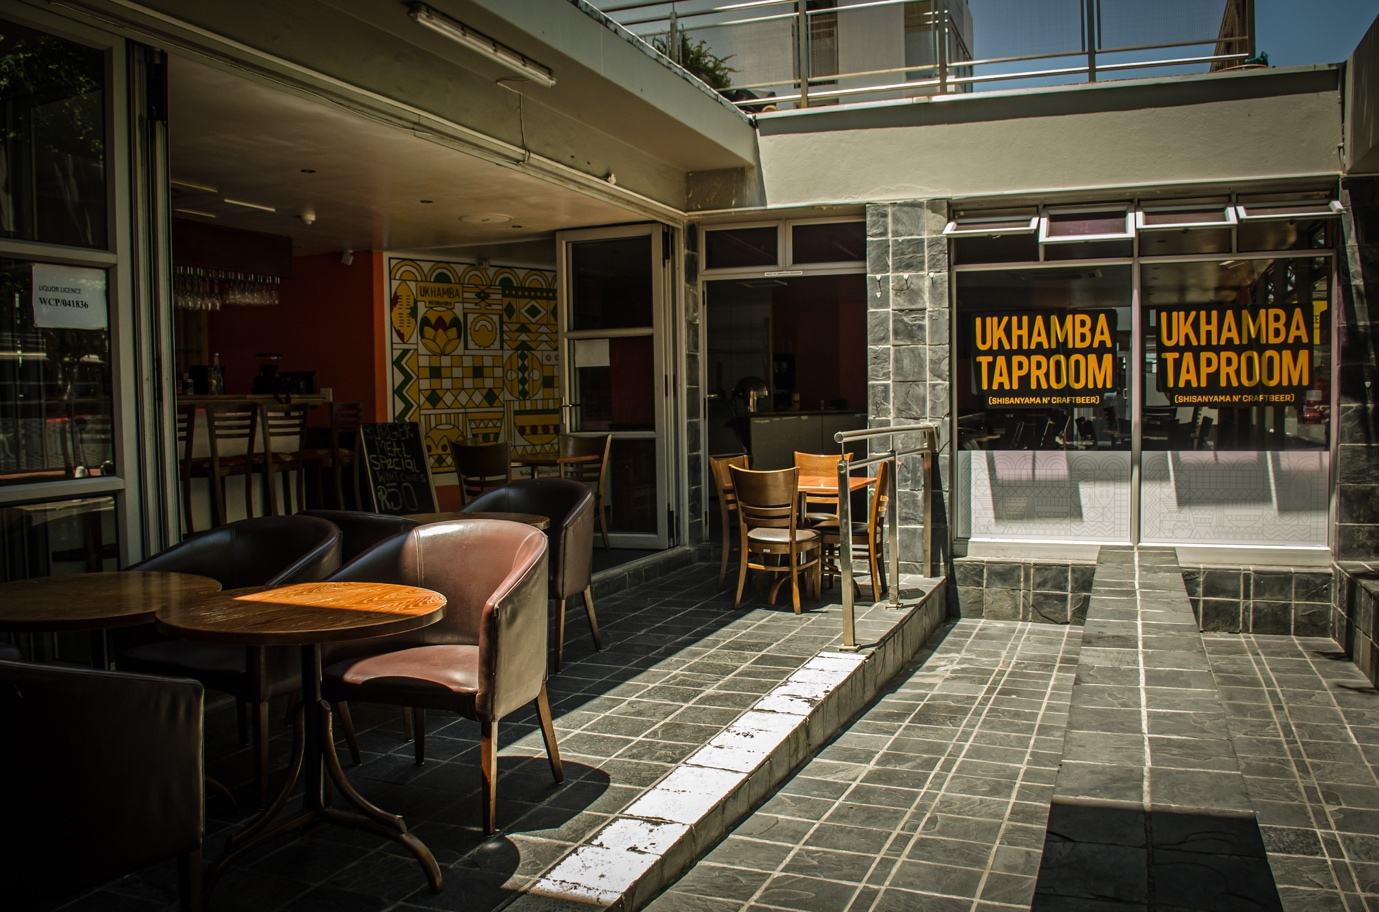 Ukhamba Taproom Opens Its Doors For Just In Time For The Festive Season 1